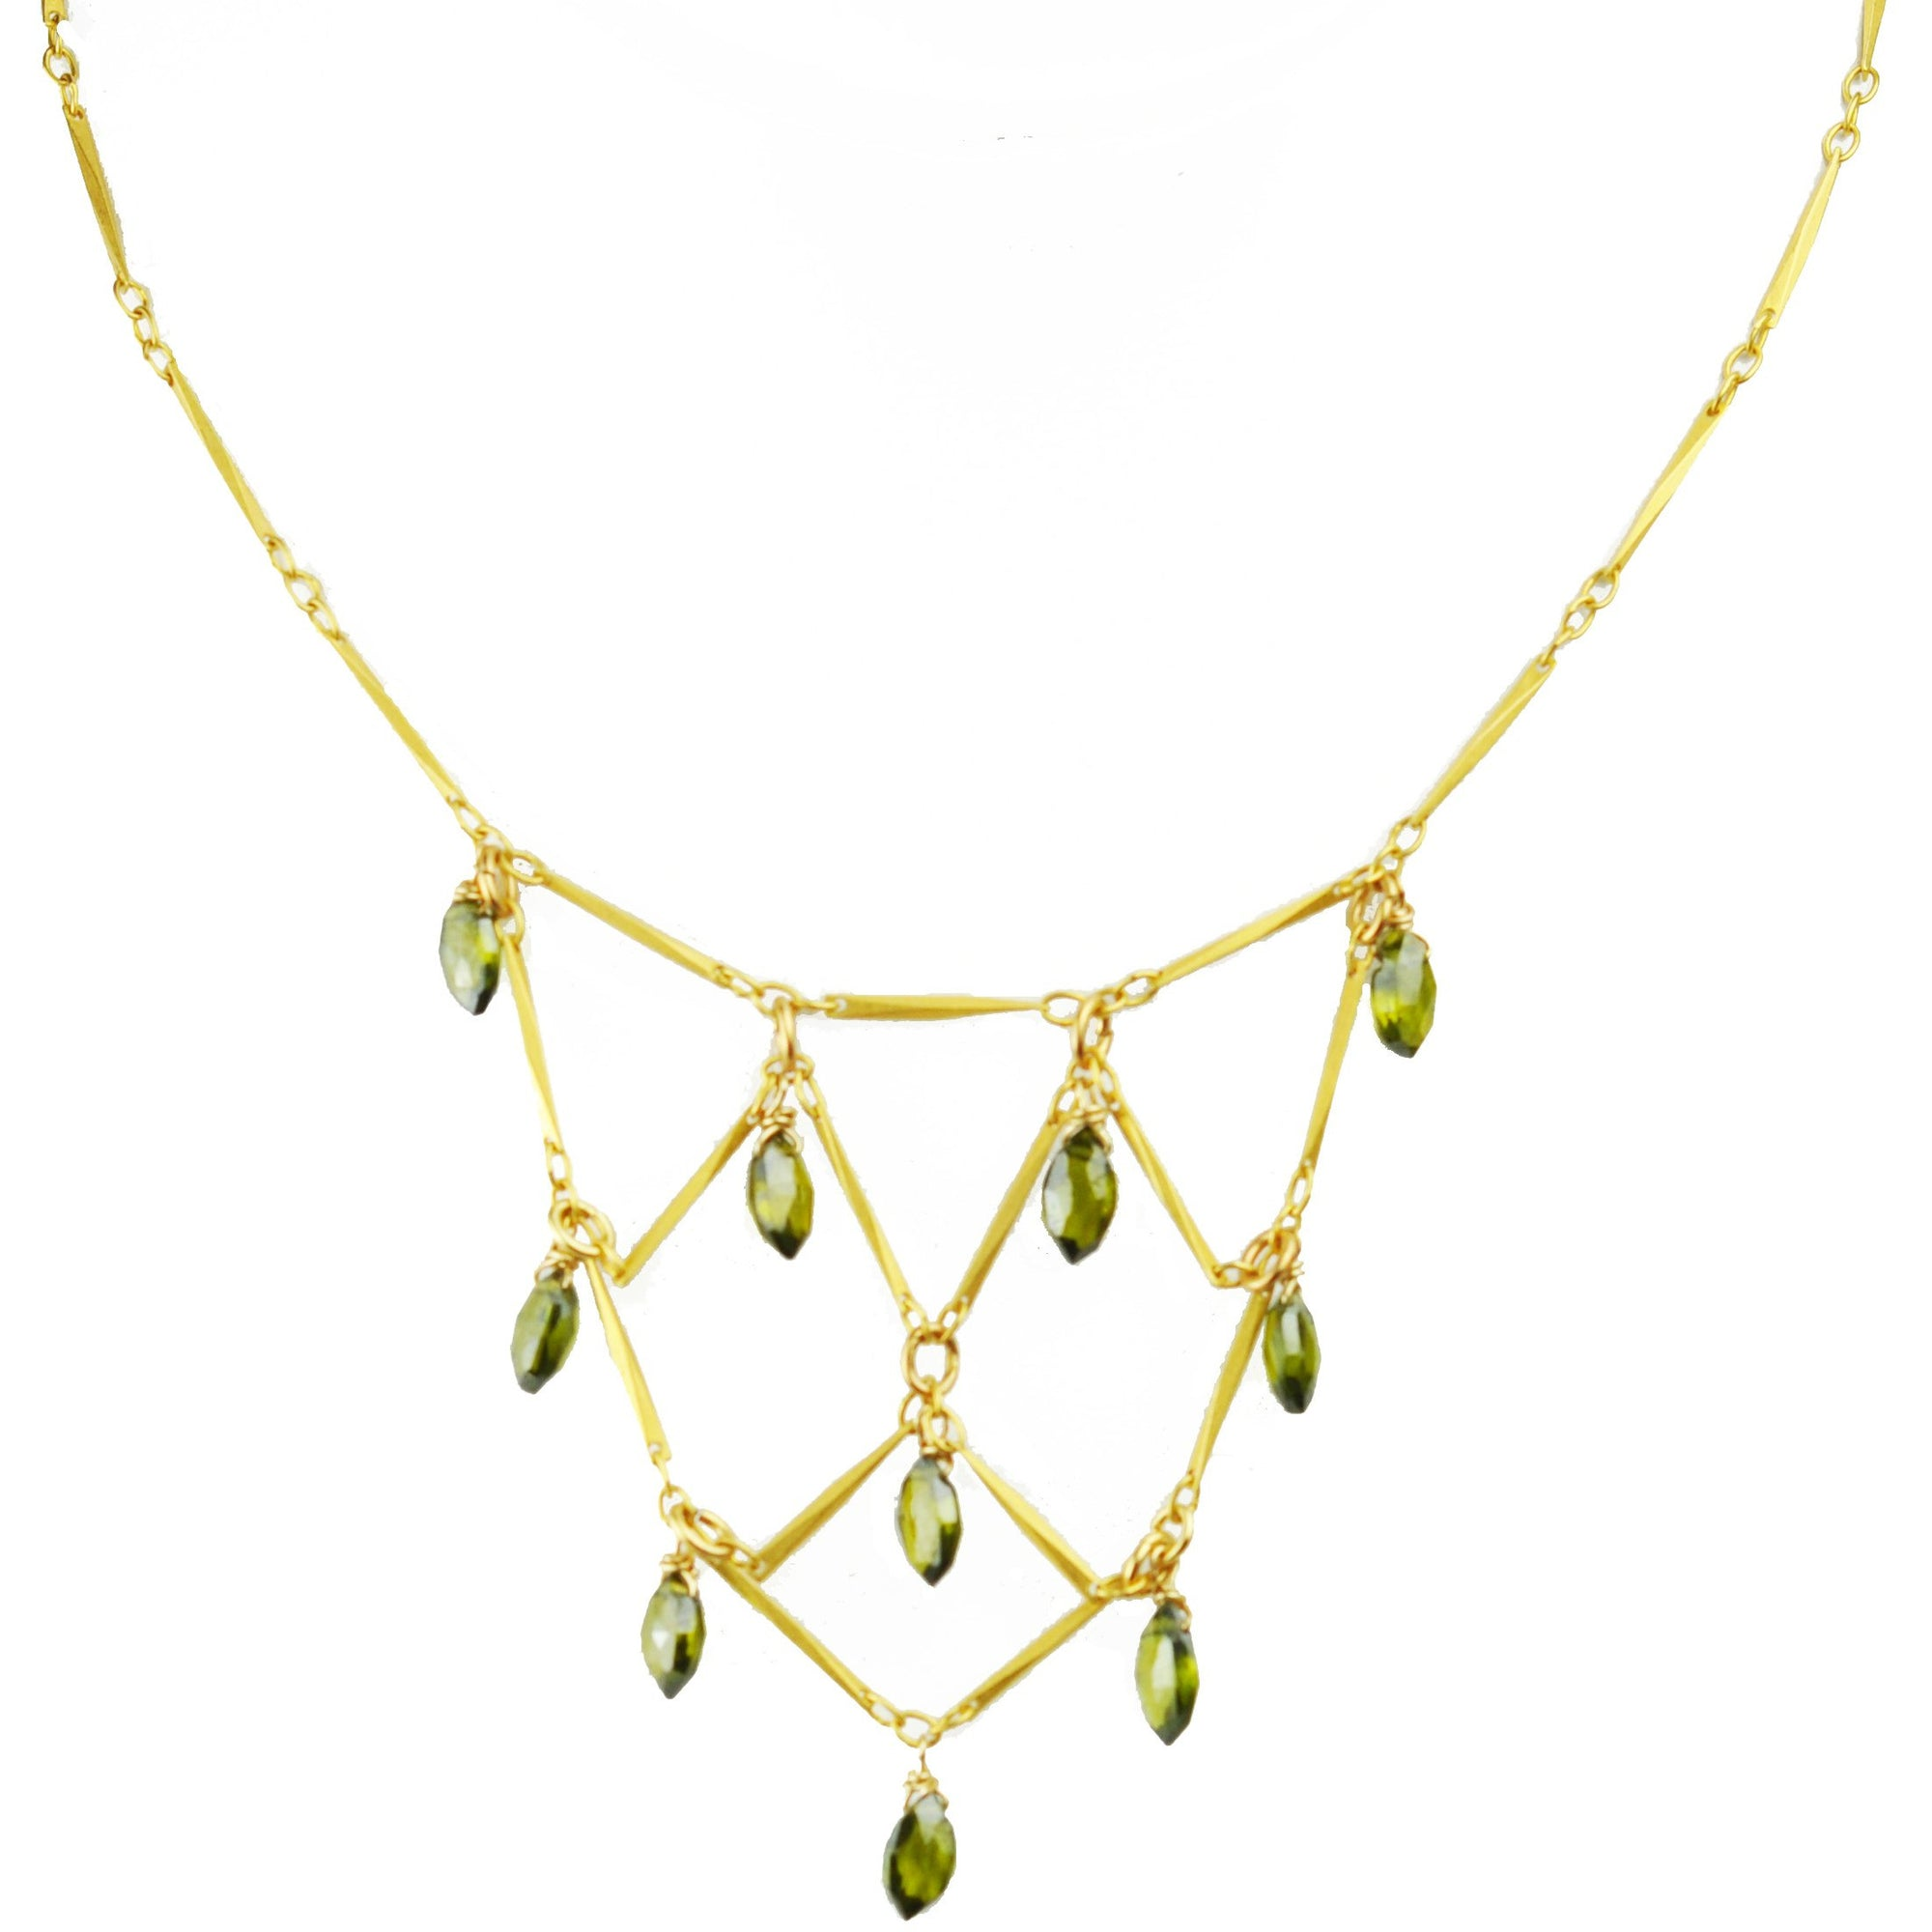 Green Tourmaline Bib Necklace - Miraposa